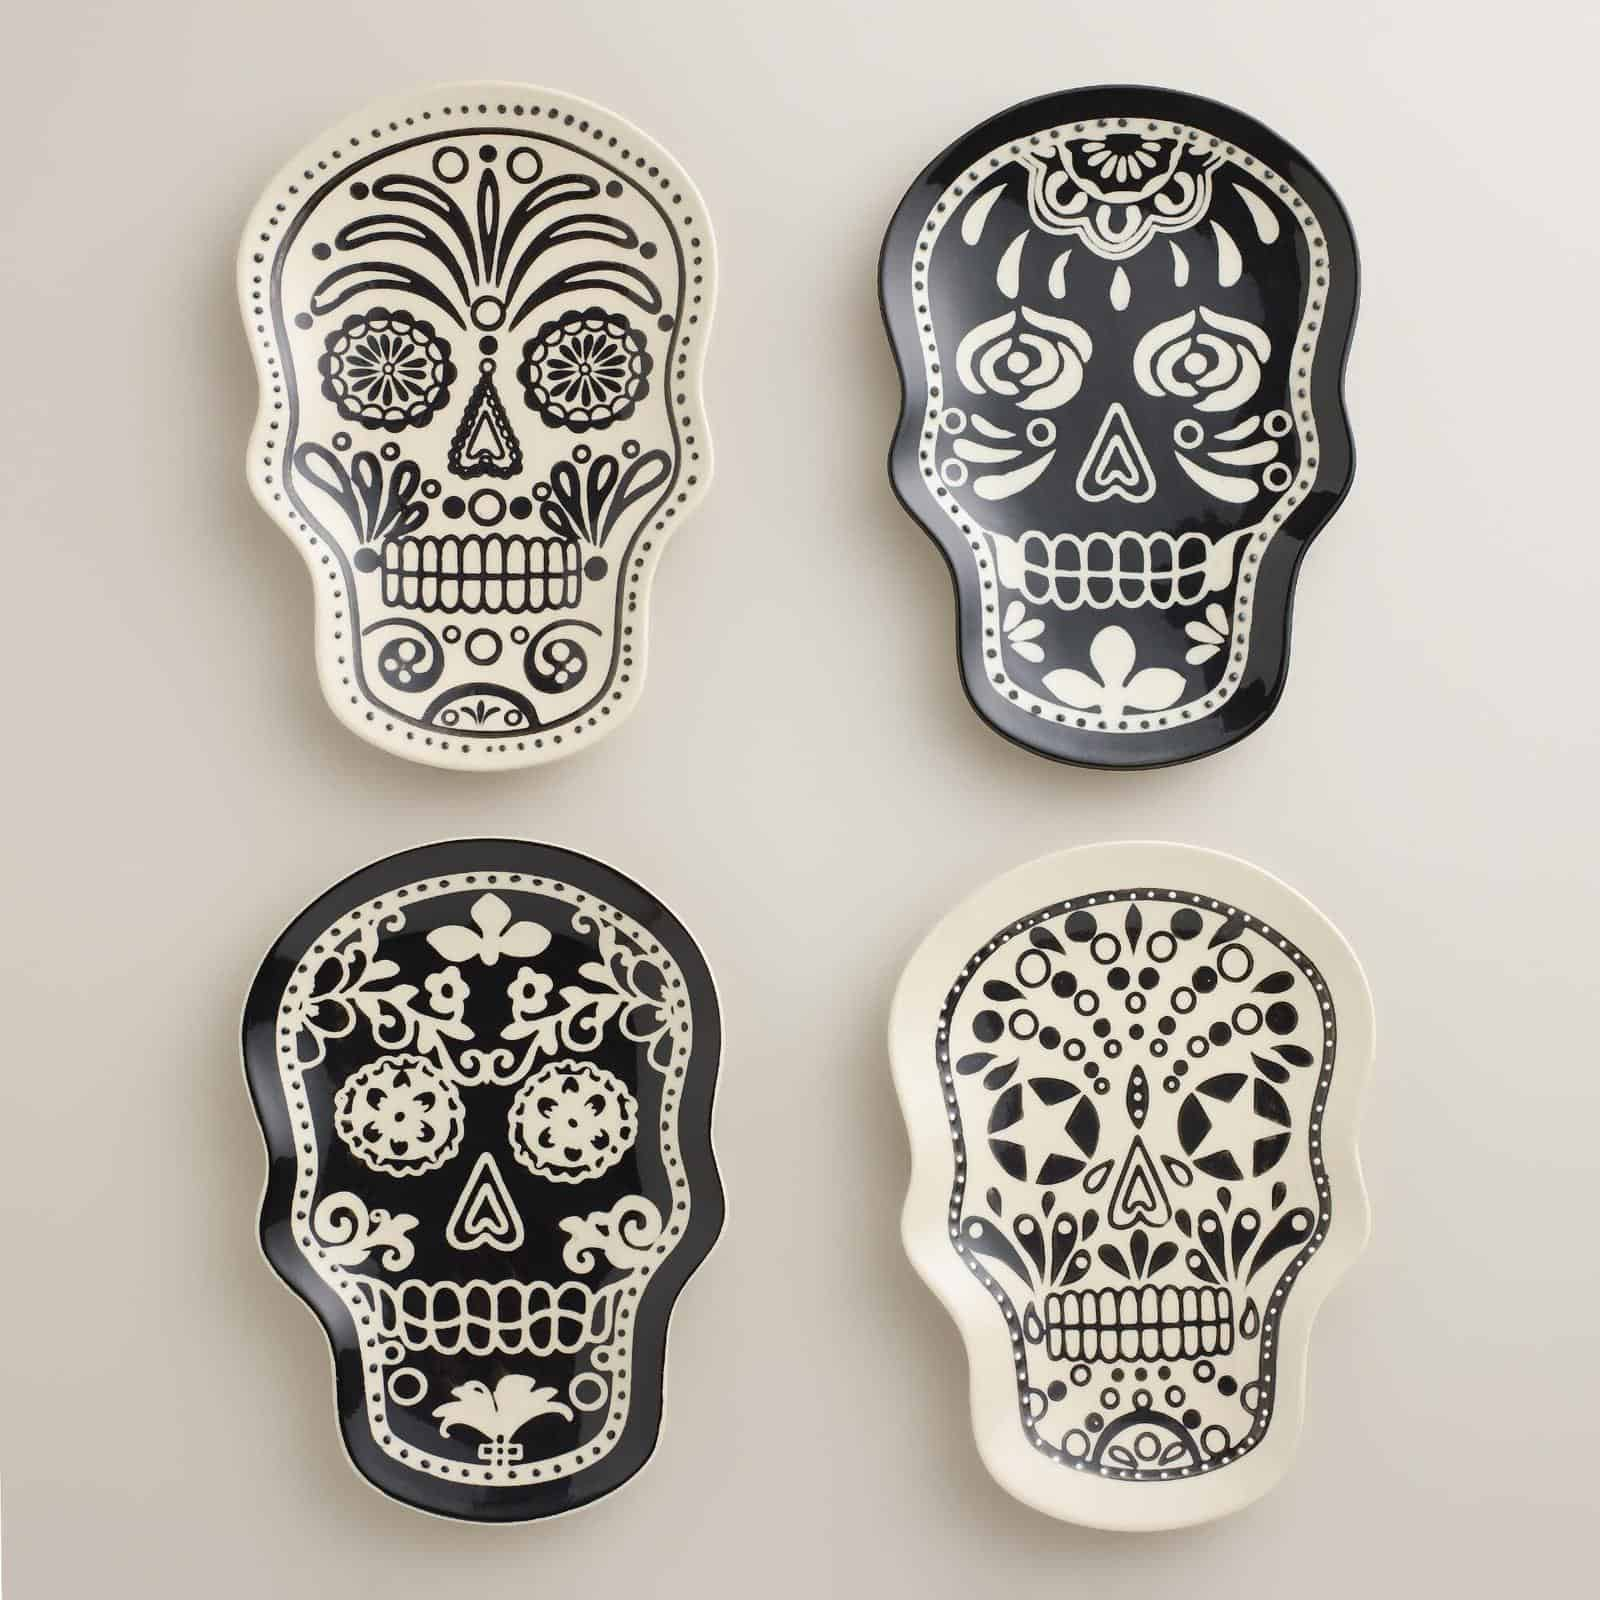 Day of the dead decor its the new halloween view in gallery day of the dead decor muertos plates world dailygadgetfo Choice Image